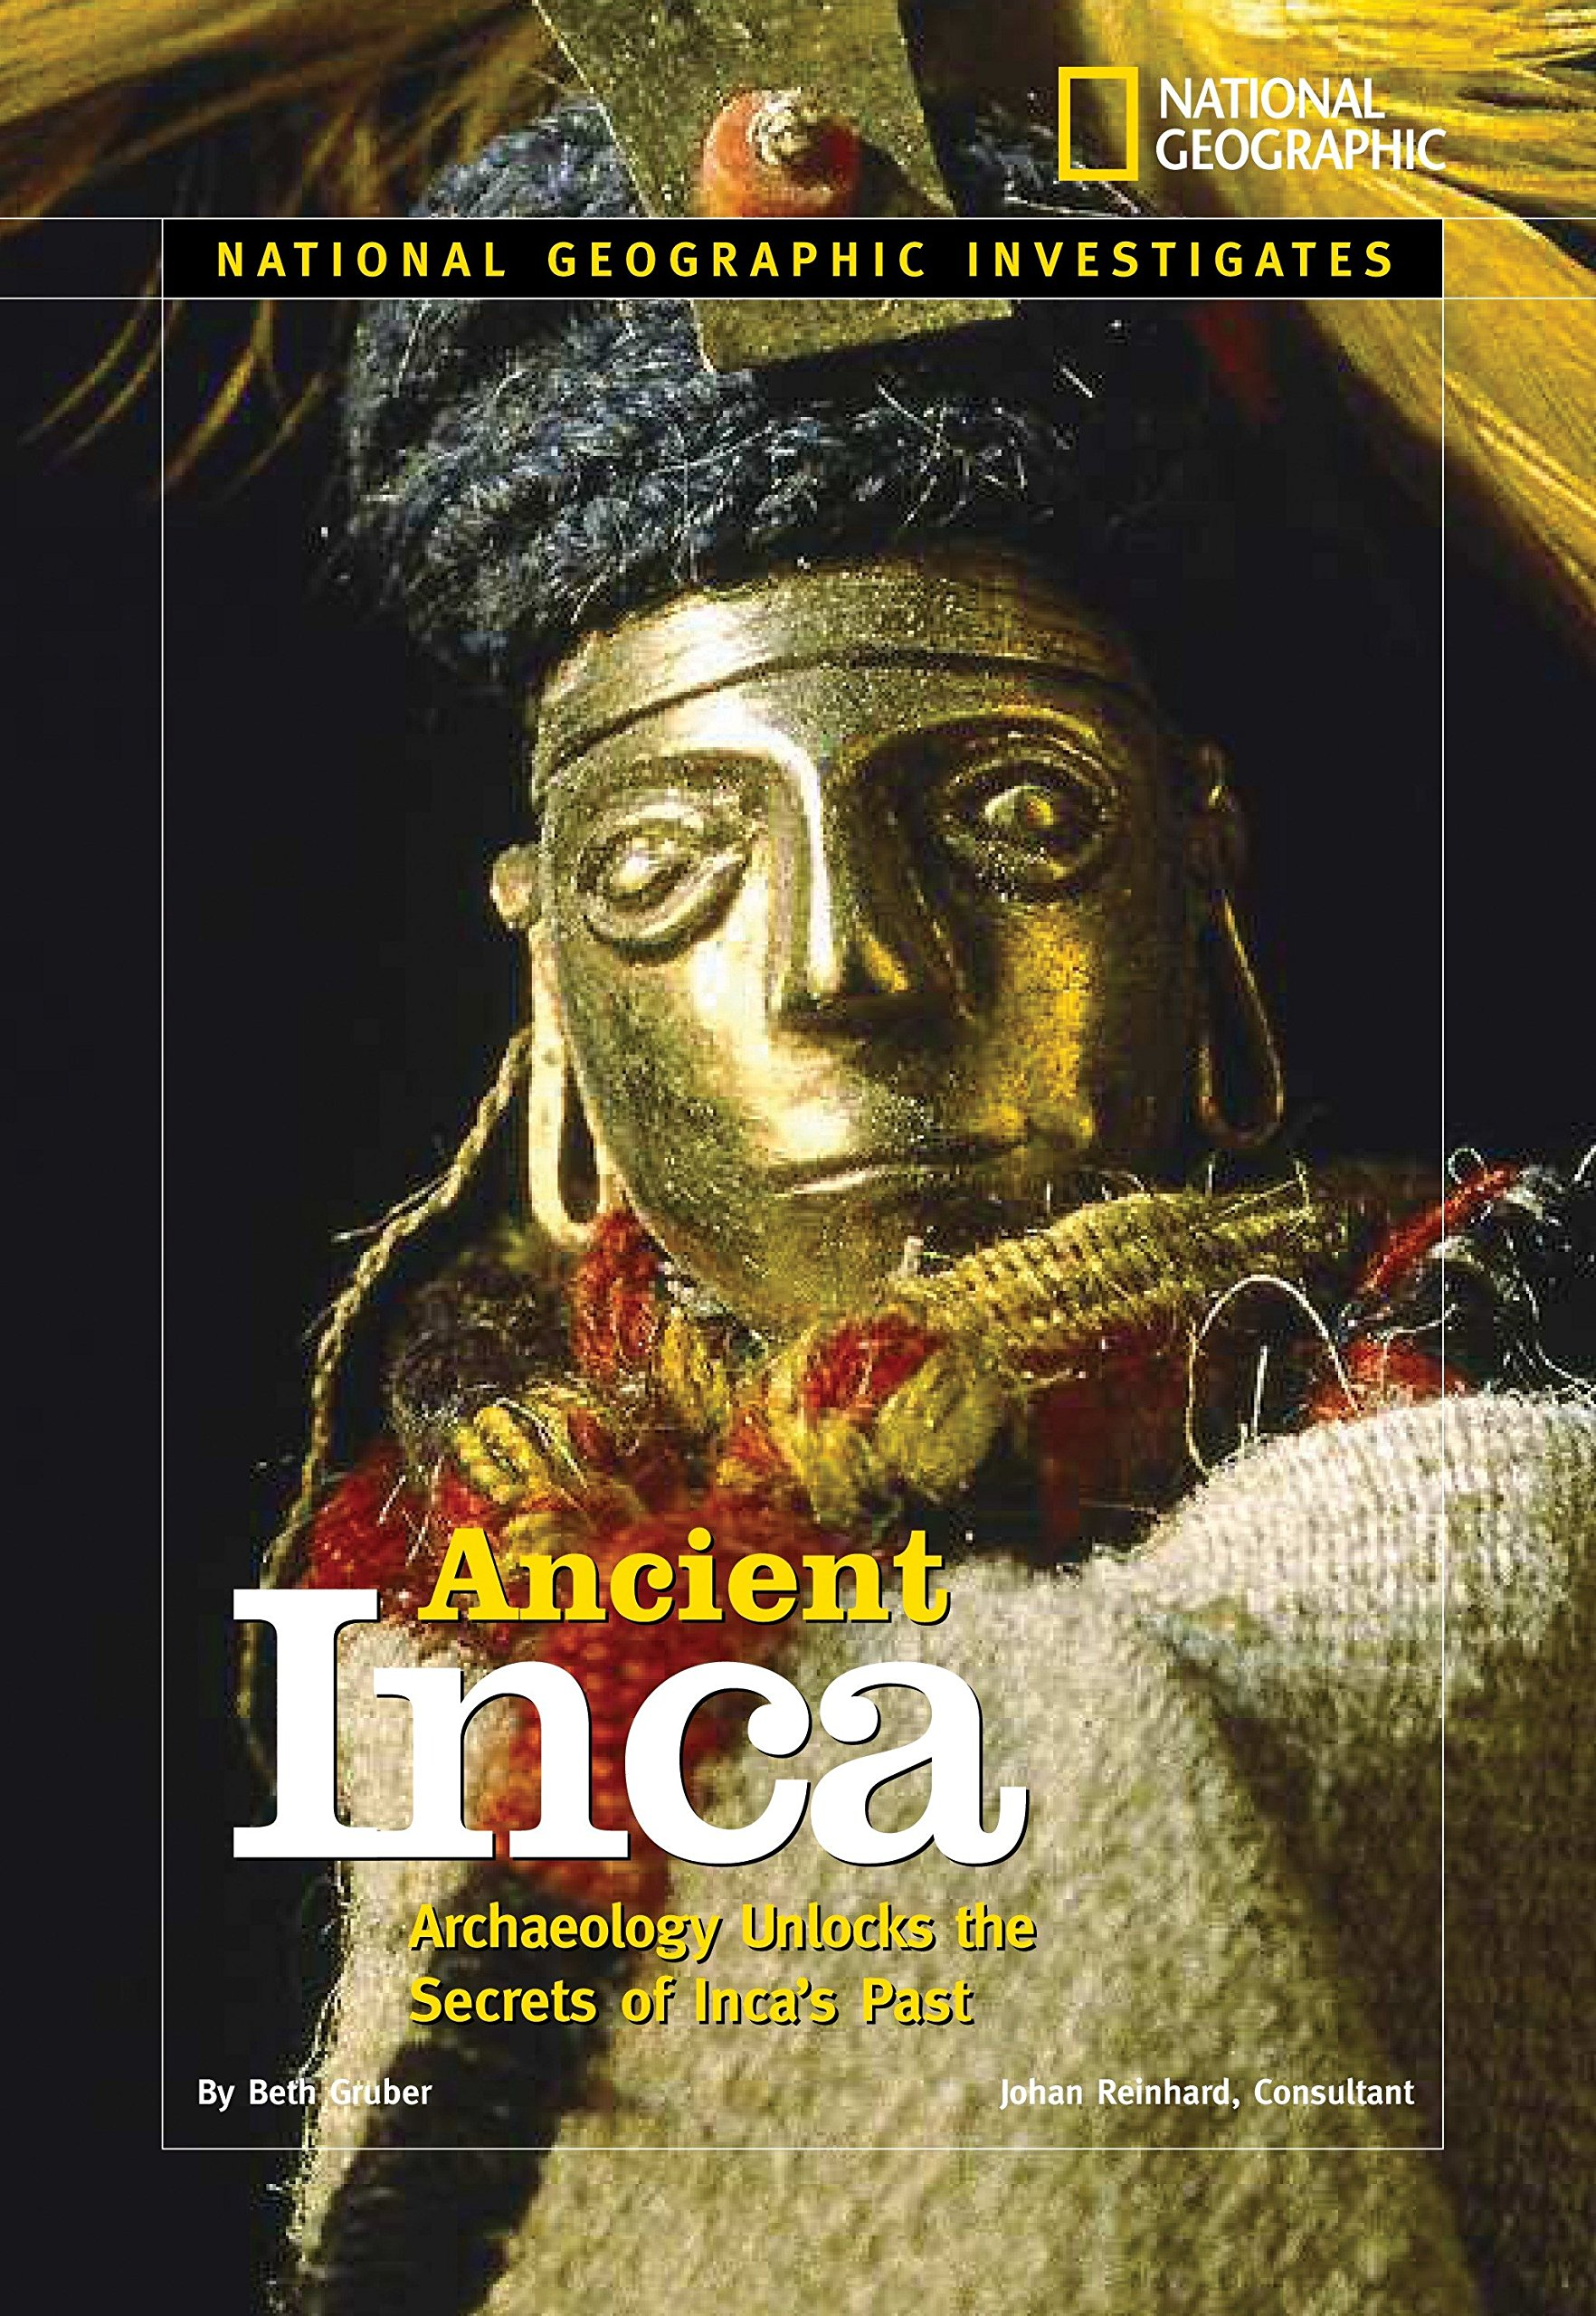 National Geographic Investigates: Ancient Inca: Archaeology Unlocks the Secrets of the Inca's Past ebook